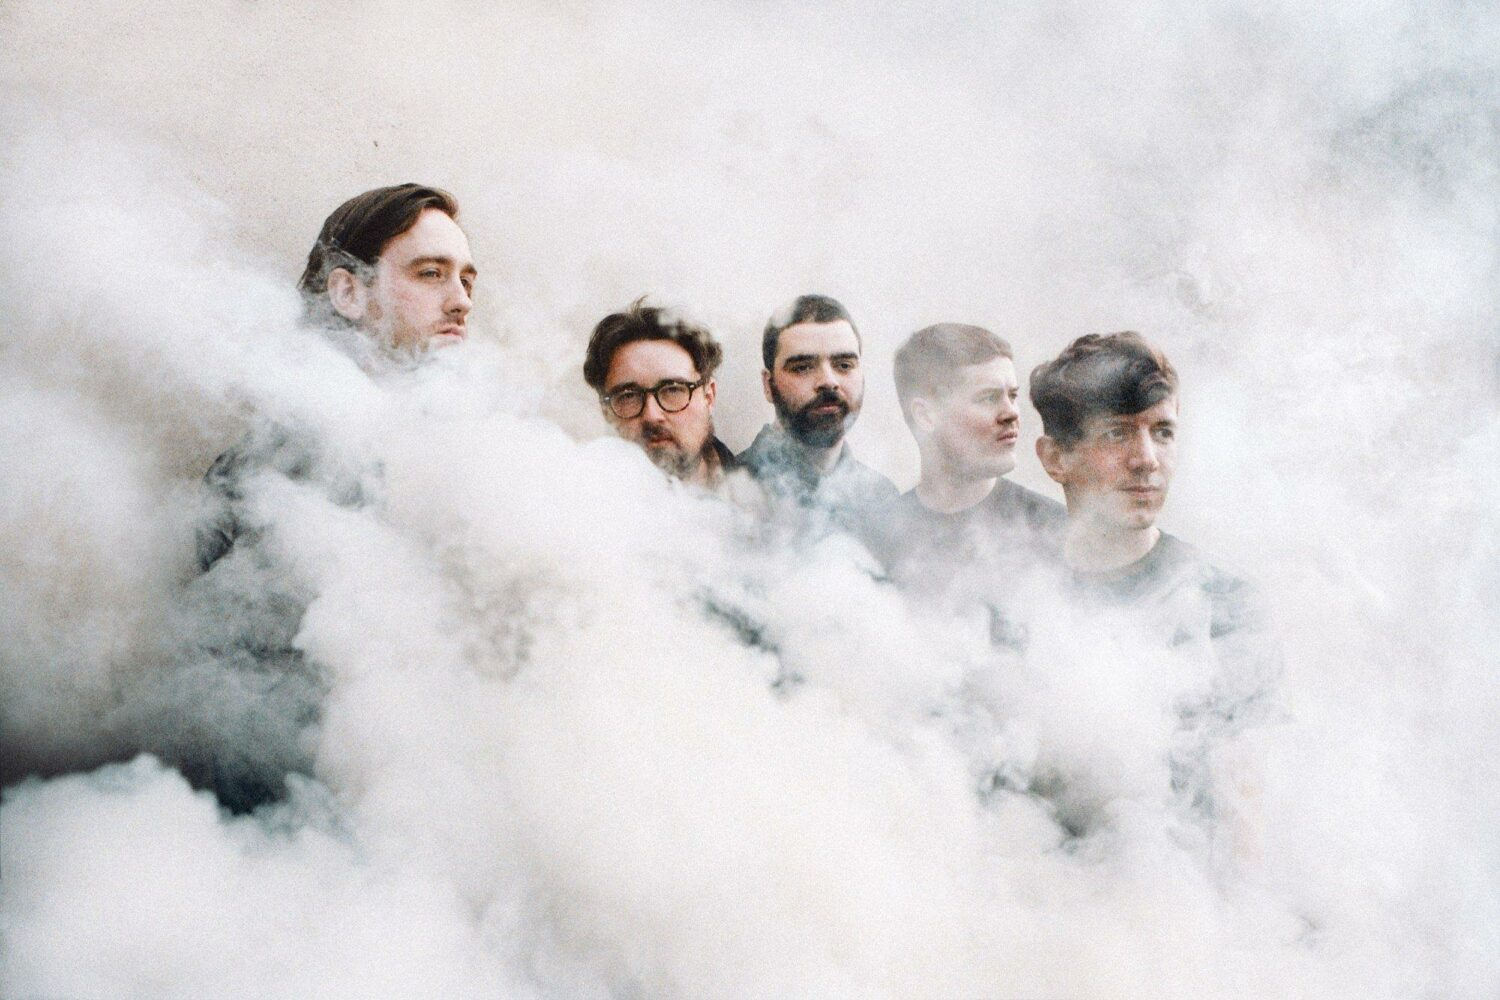 Hookworms share new track 'Each Time We Pass', featuring Virginia Wing's Alice Merida Richards